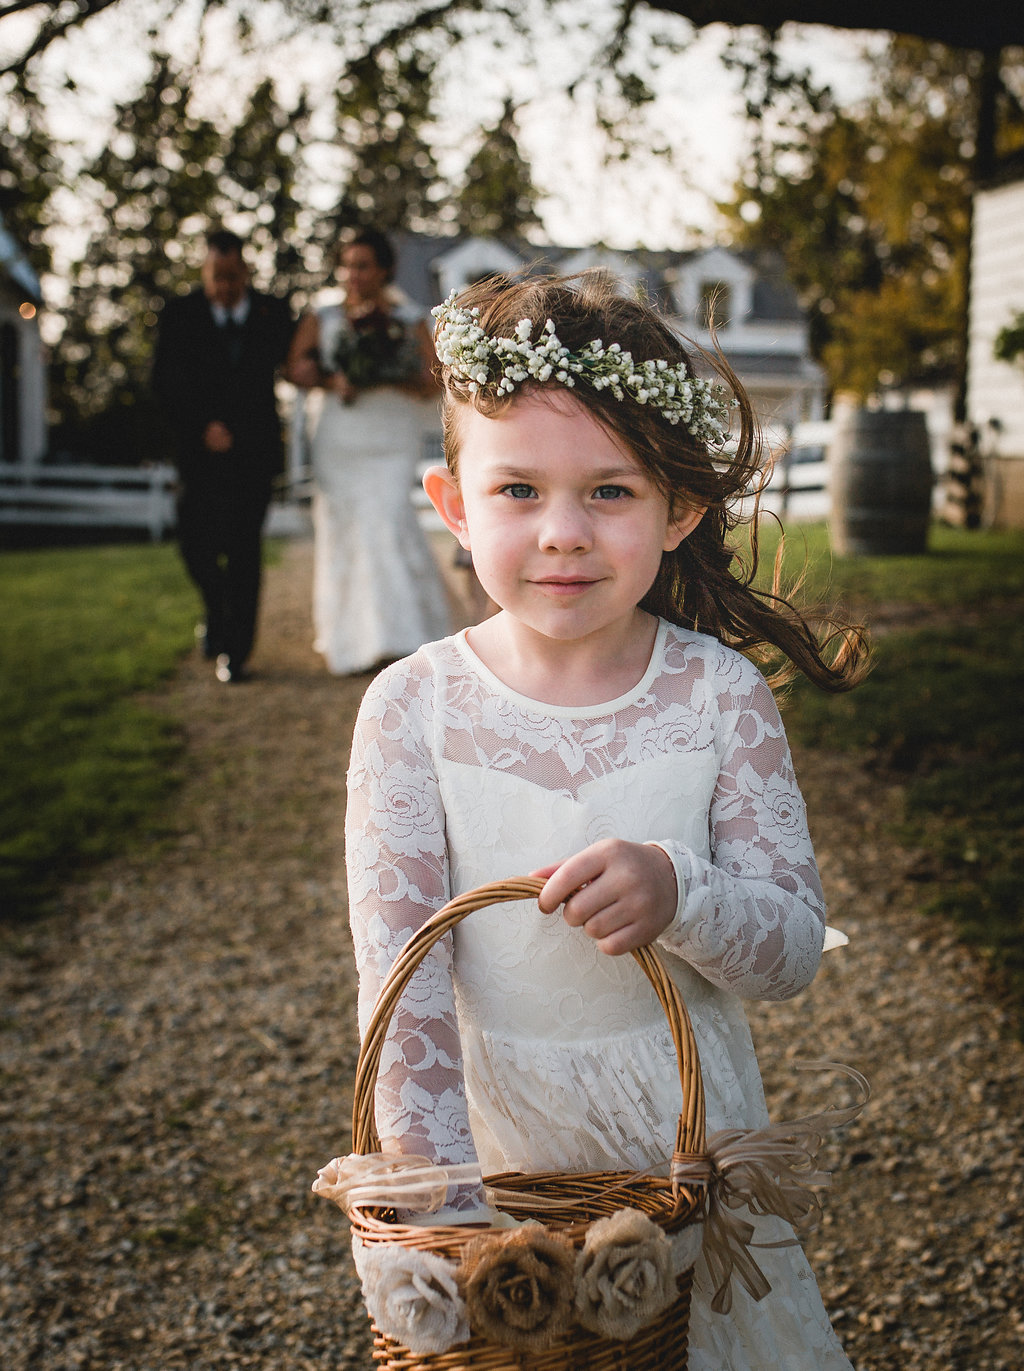 Leslee + Billy | Aqua Fox Photography | Legacy Hill Farm | Cutting Garden floral crown | wind swept flower girl with wicker basket and baby's breath floral crown